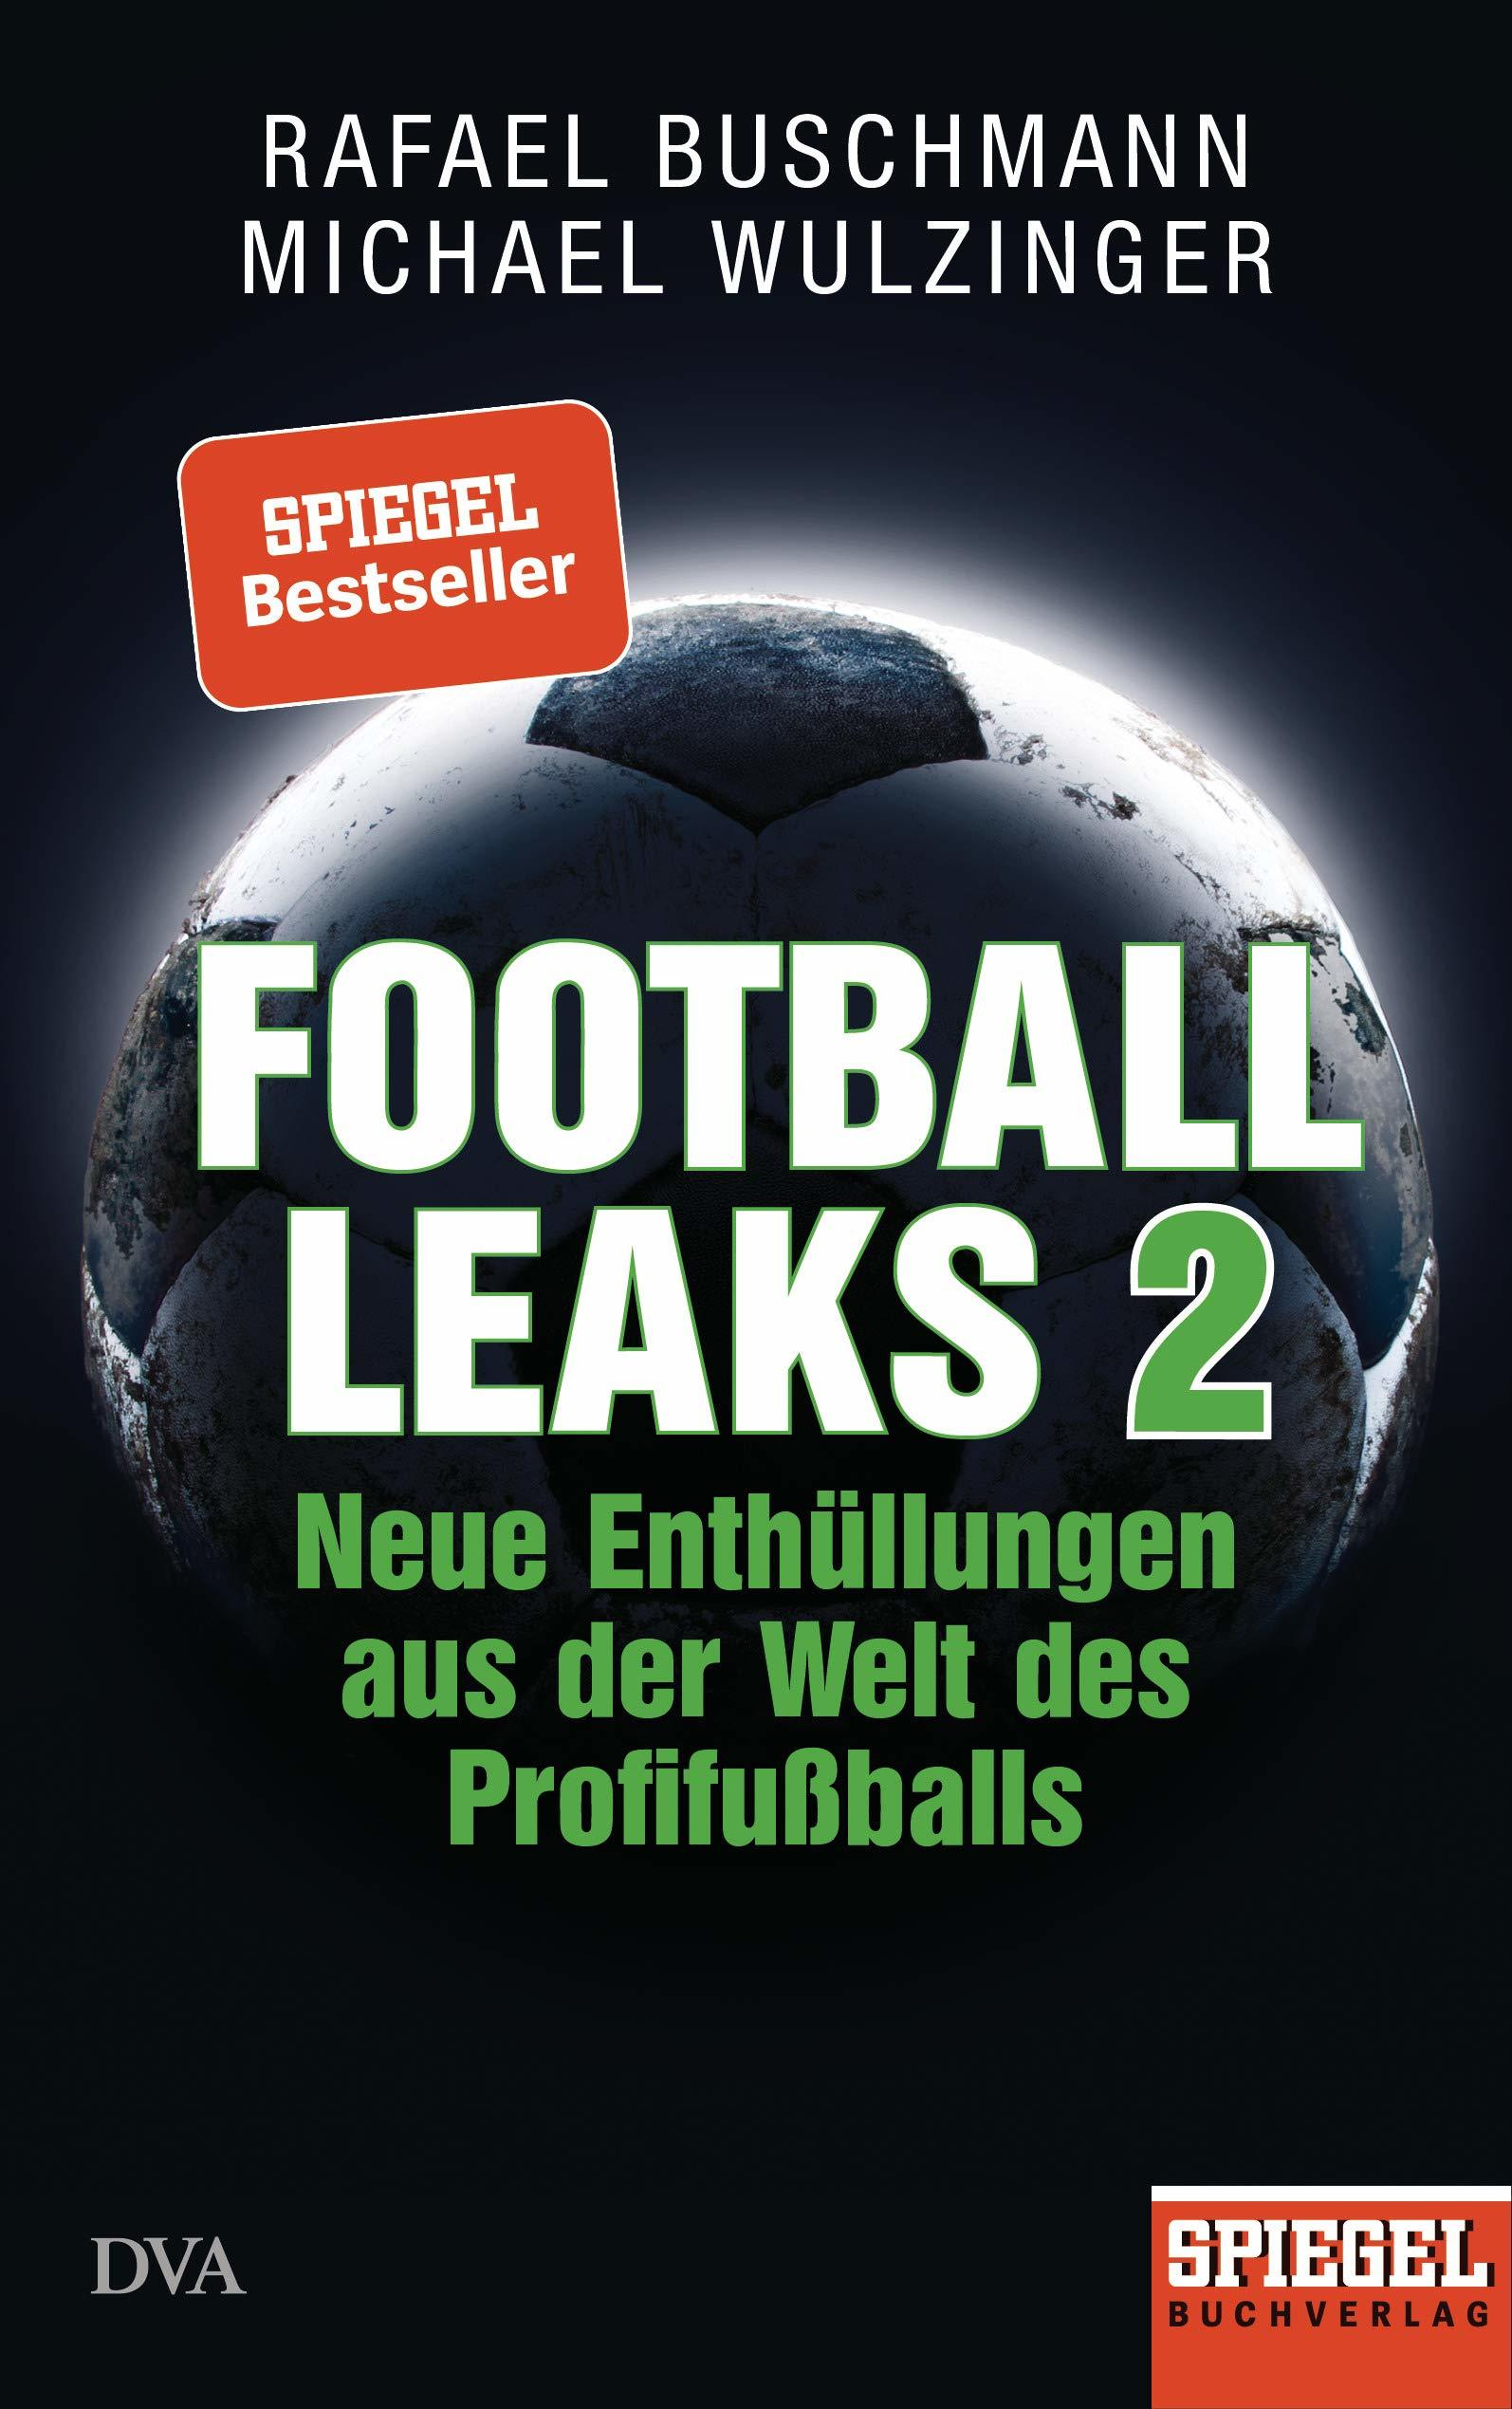 """Football Leaks-2"":  ""Динамо"", офшоры, ""украинское братство"" - изображение 1"